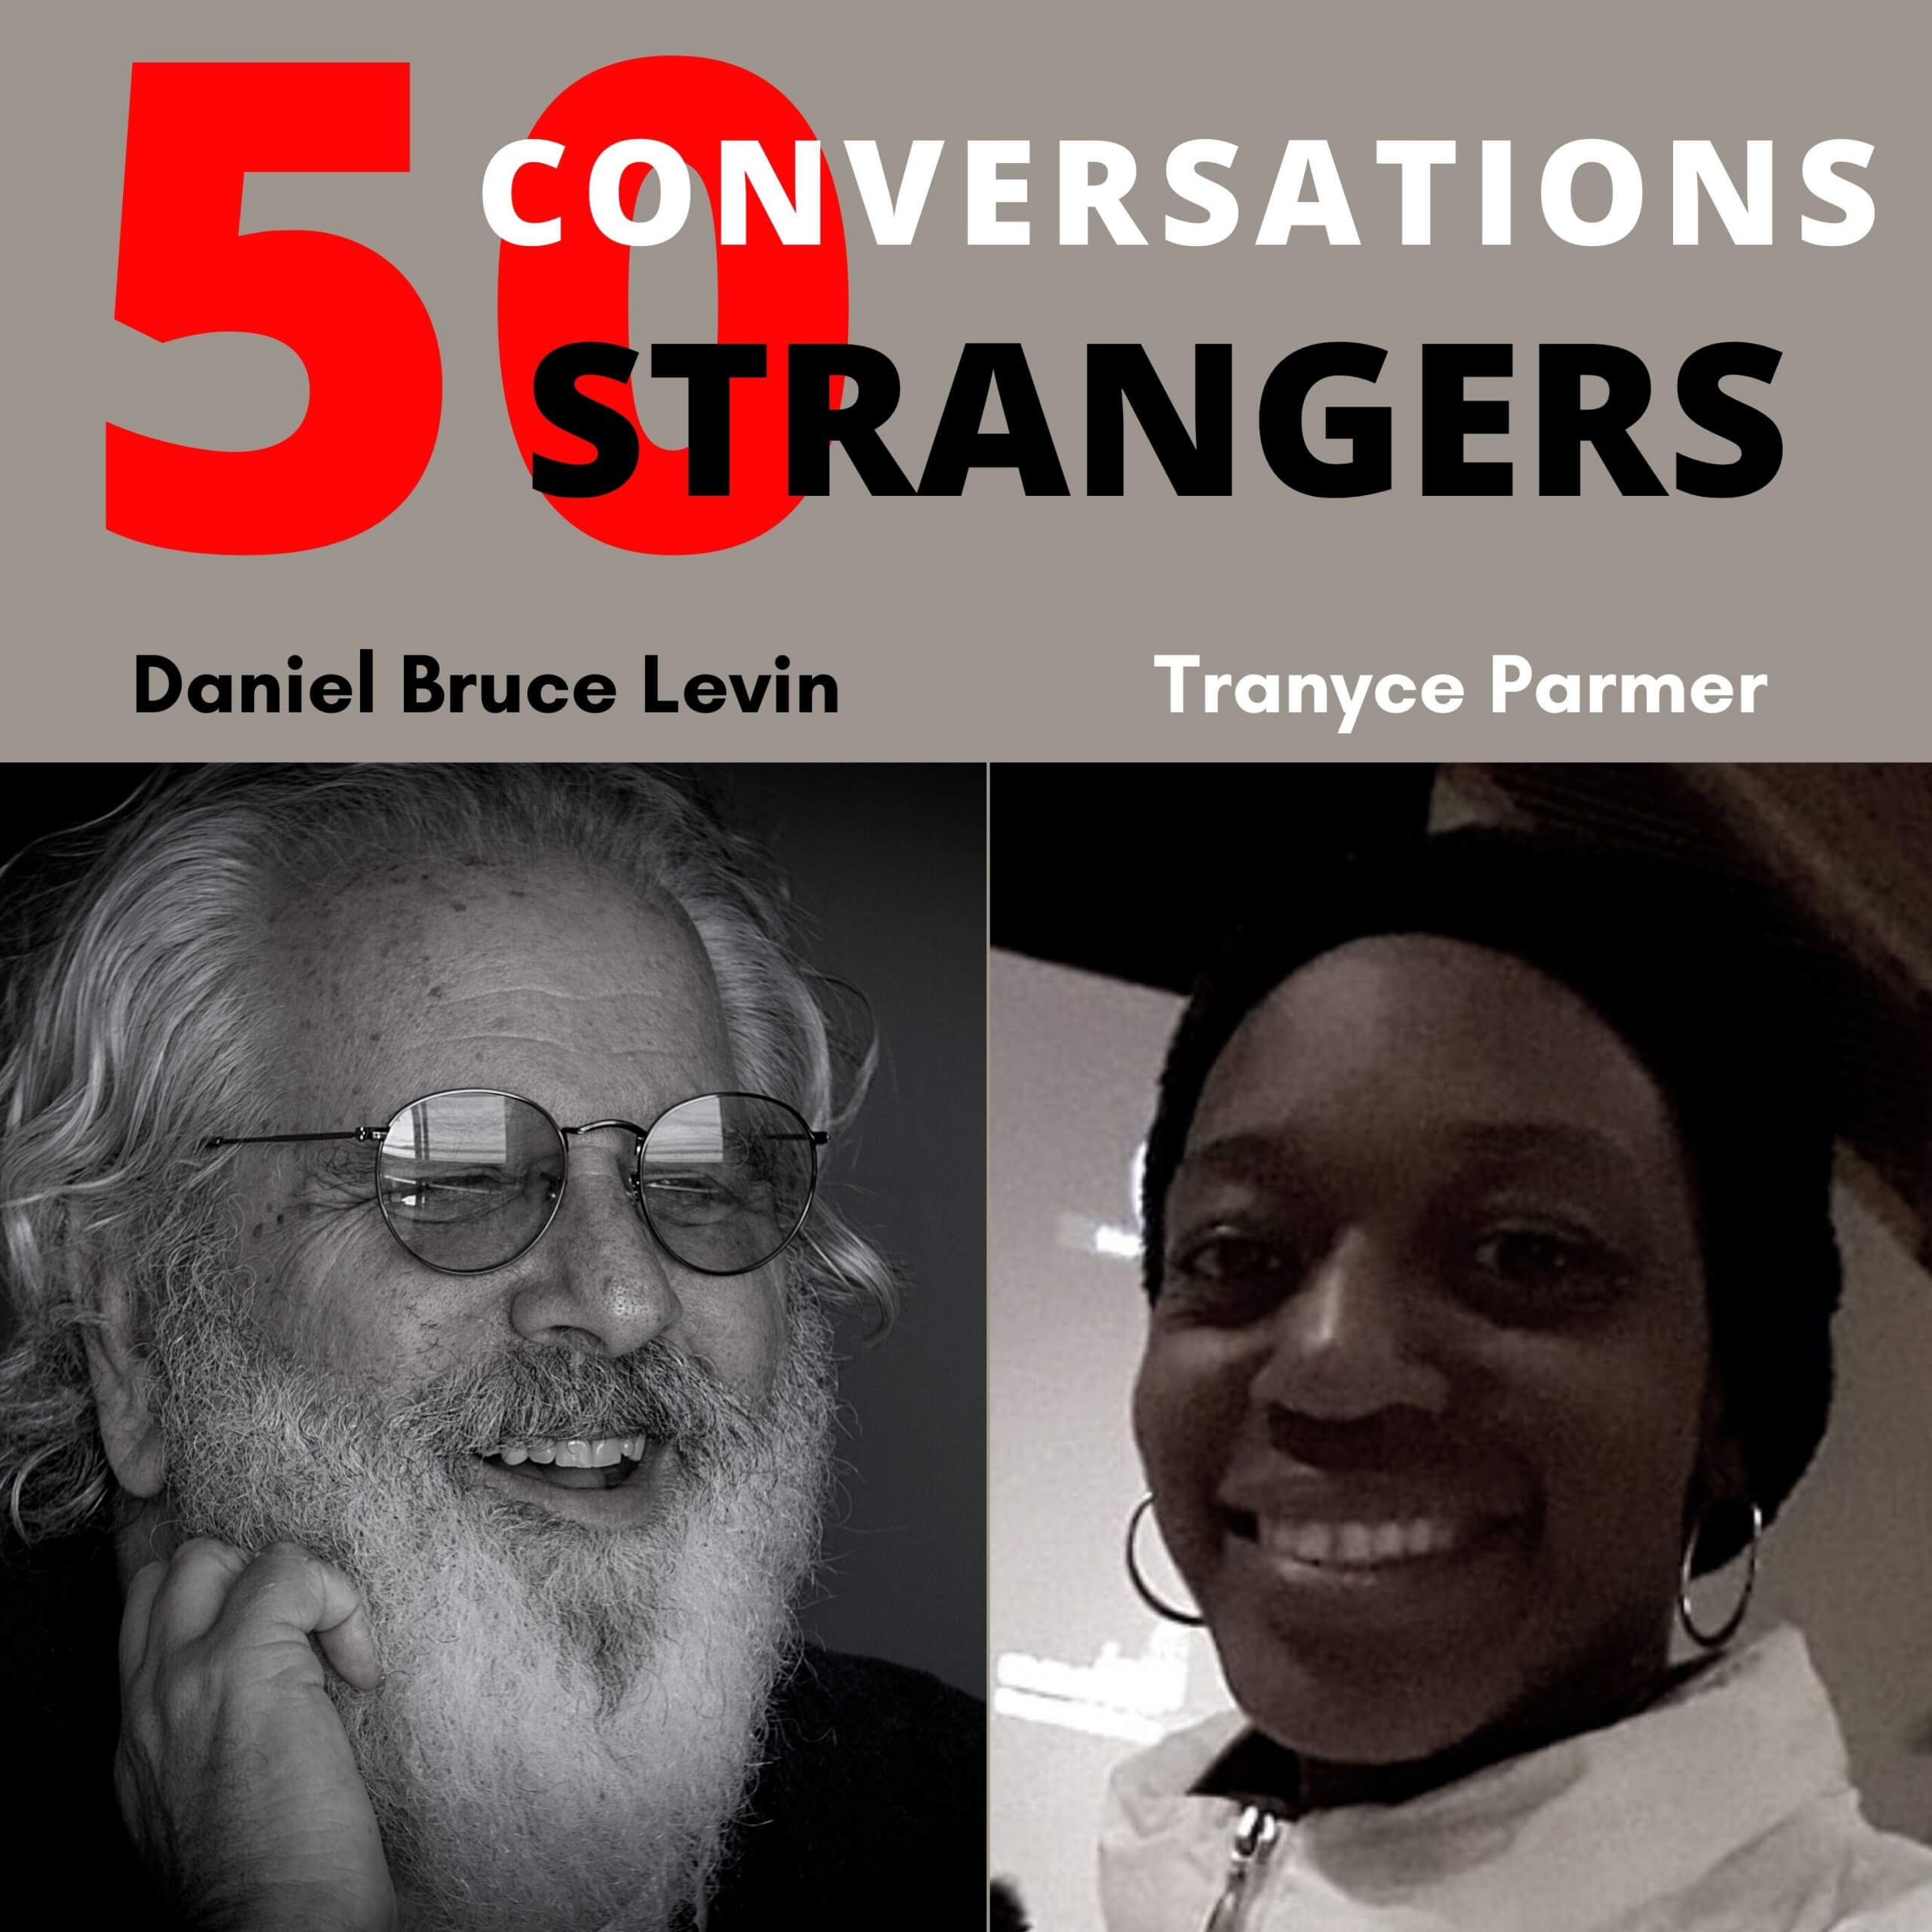 50 Conversations with 50 Strangers with Tranyce Parmer